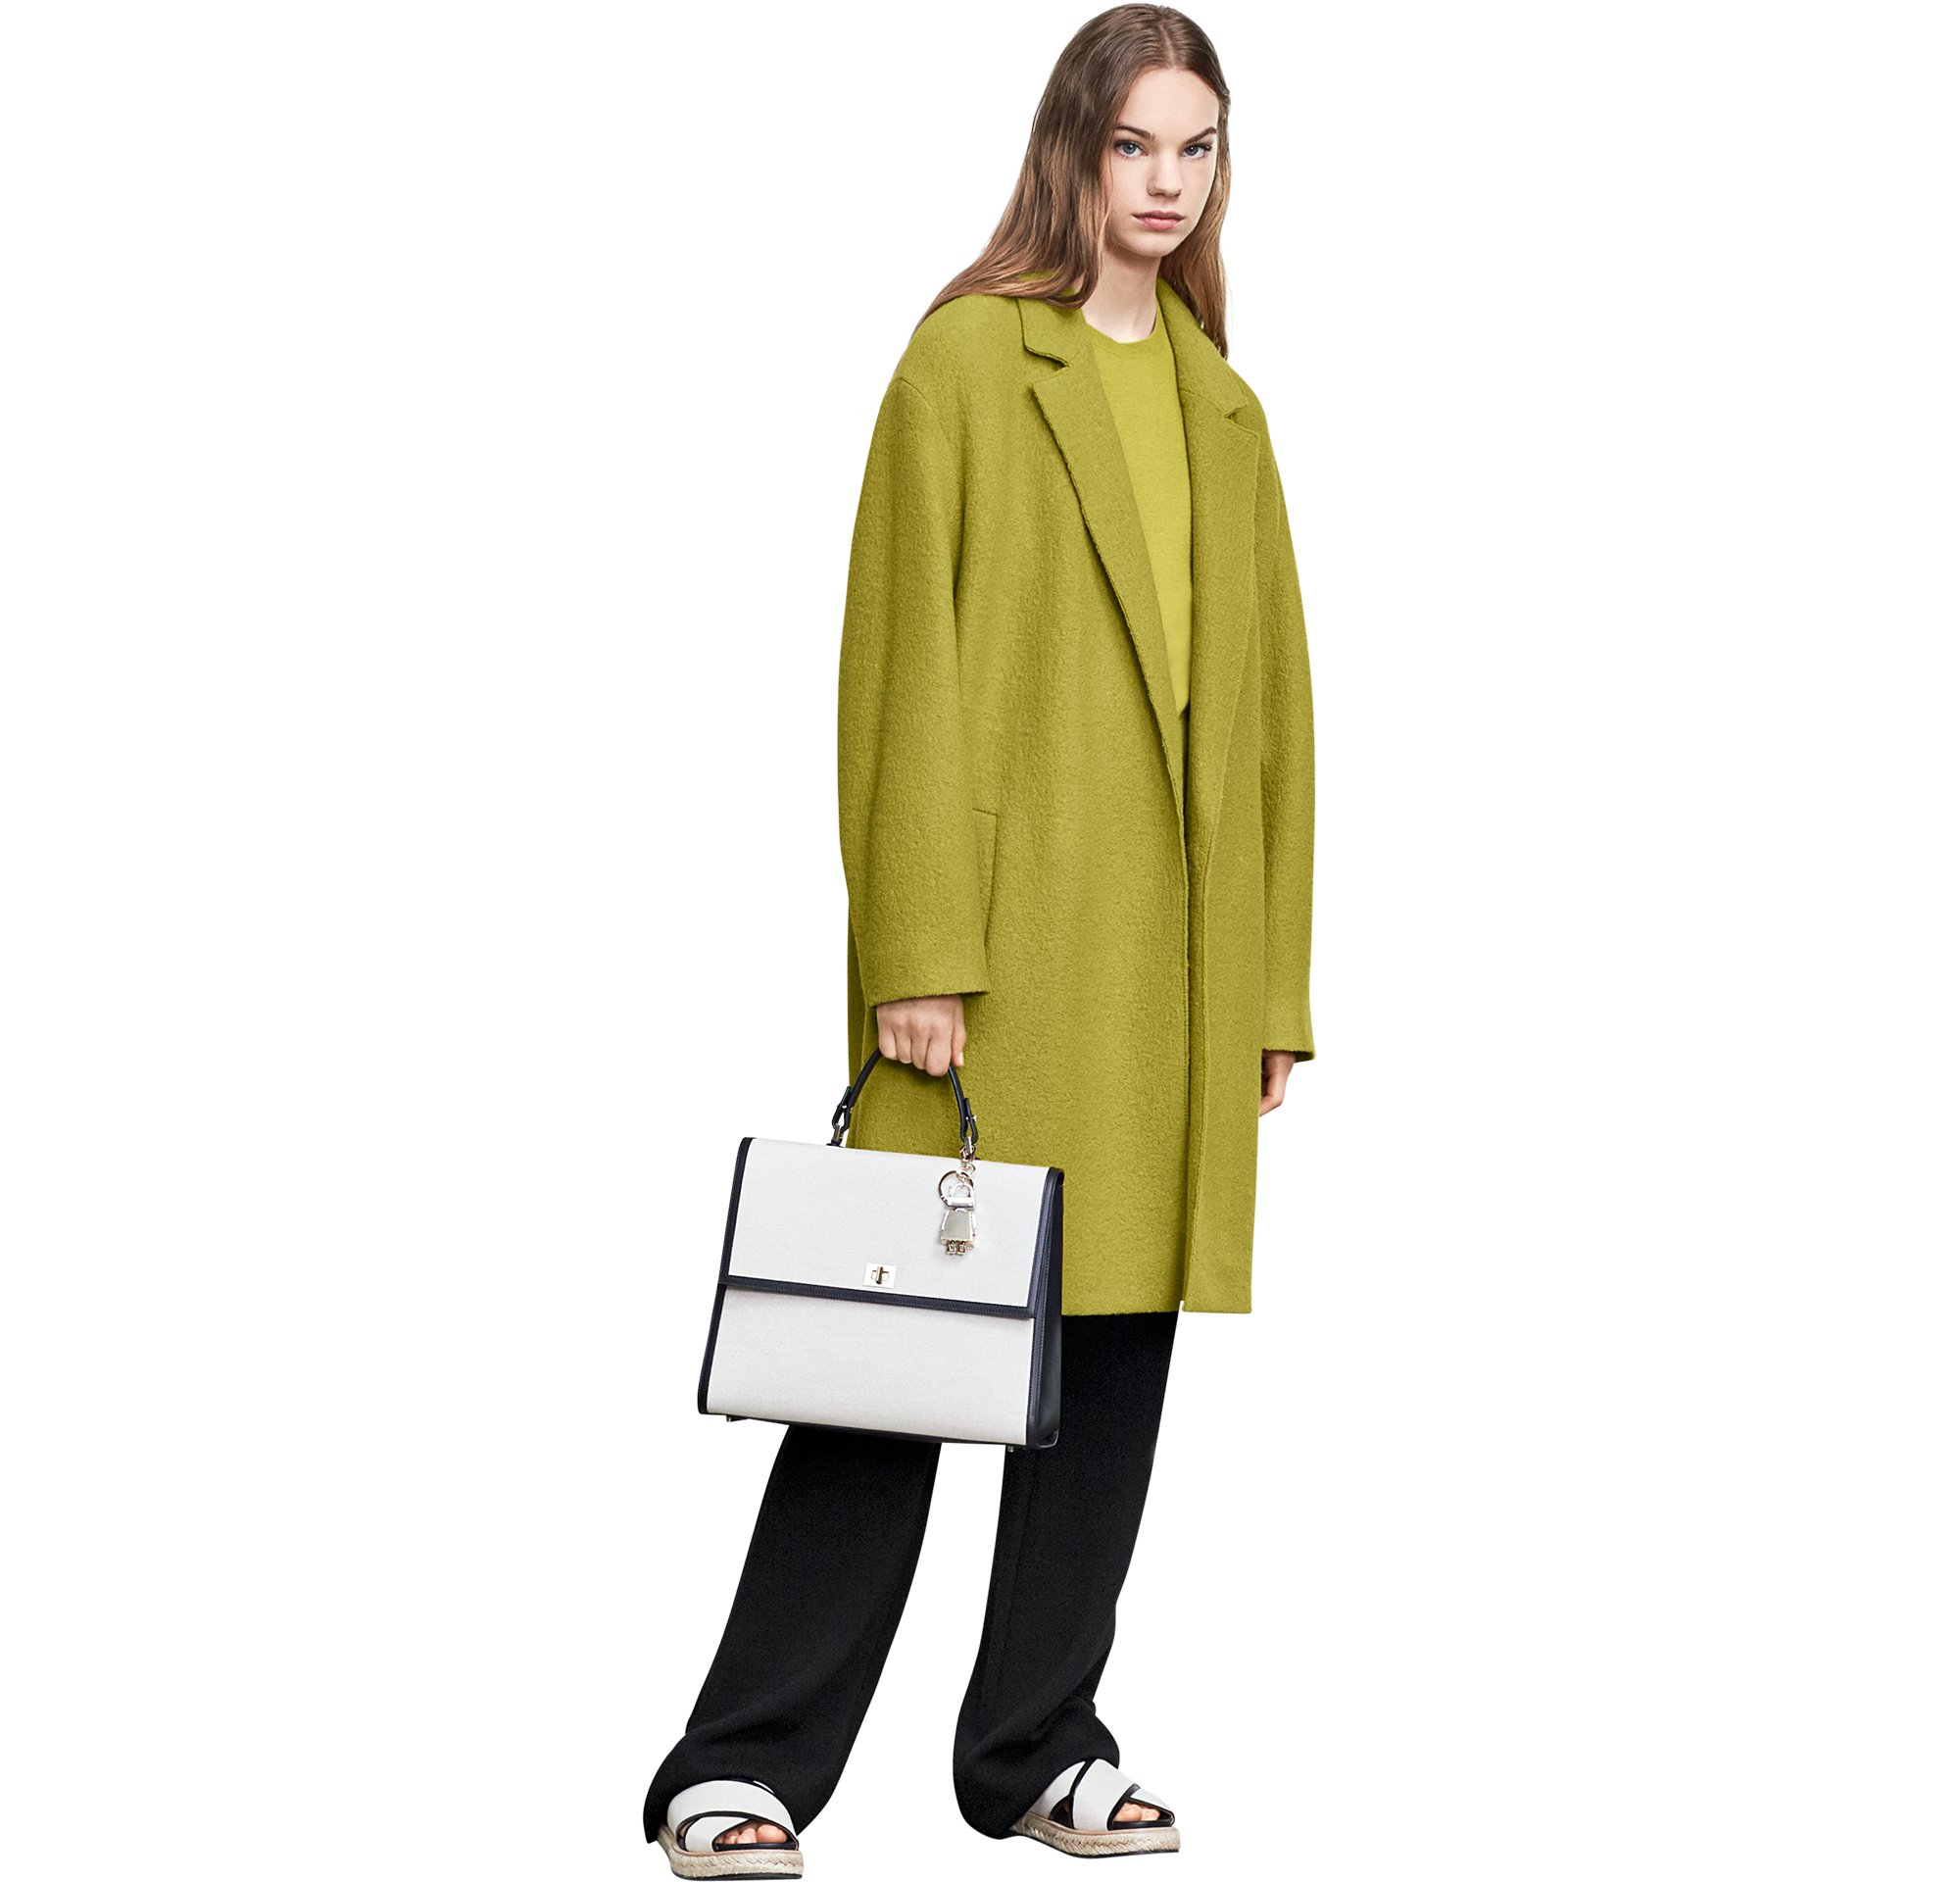 Green coat with bag and shoes by BOSS